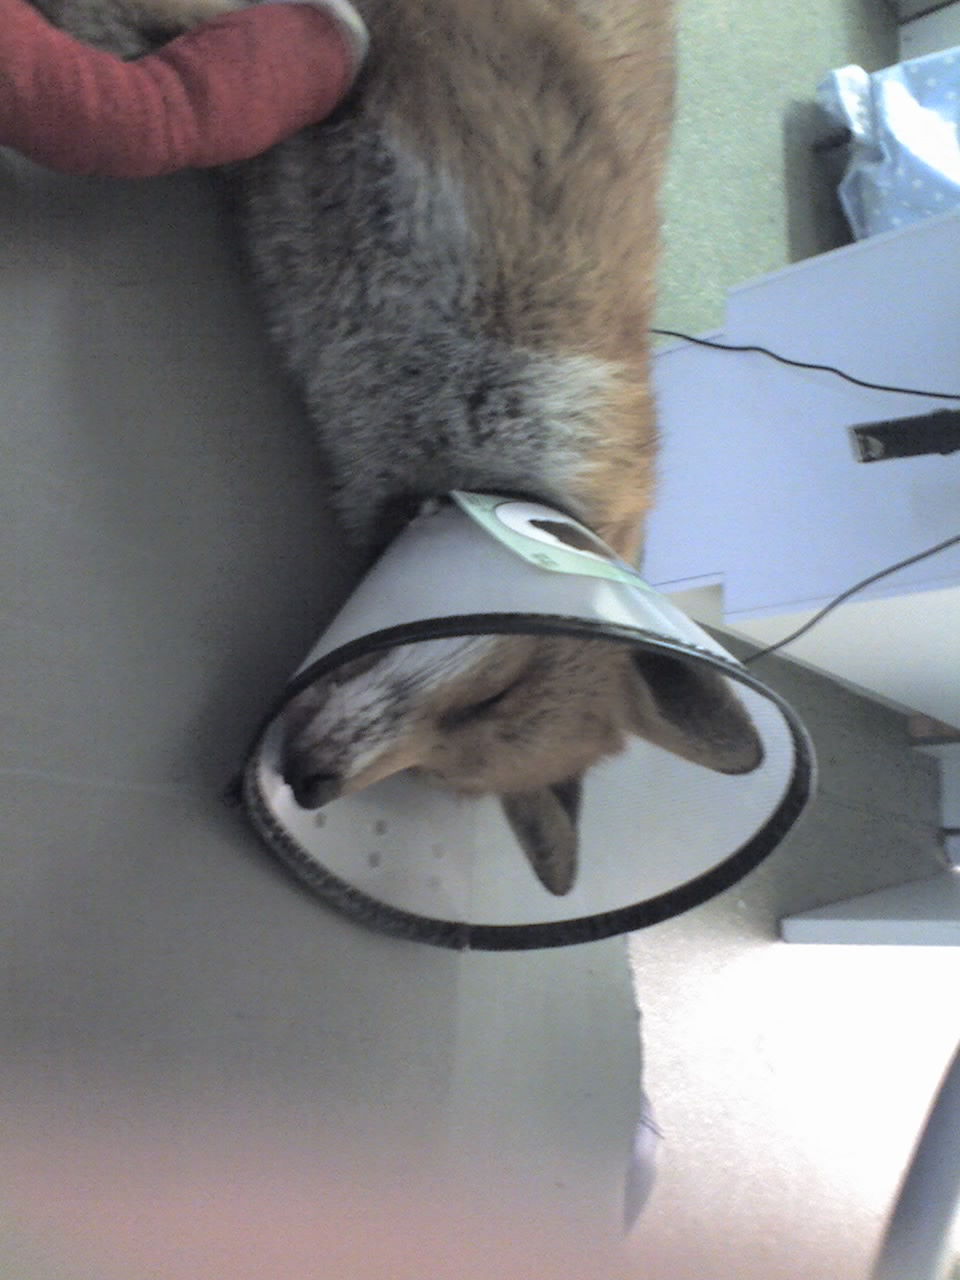 RTA fox - sedated for examination